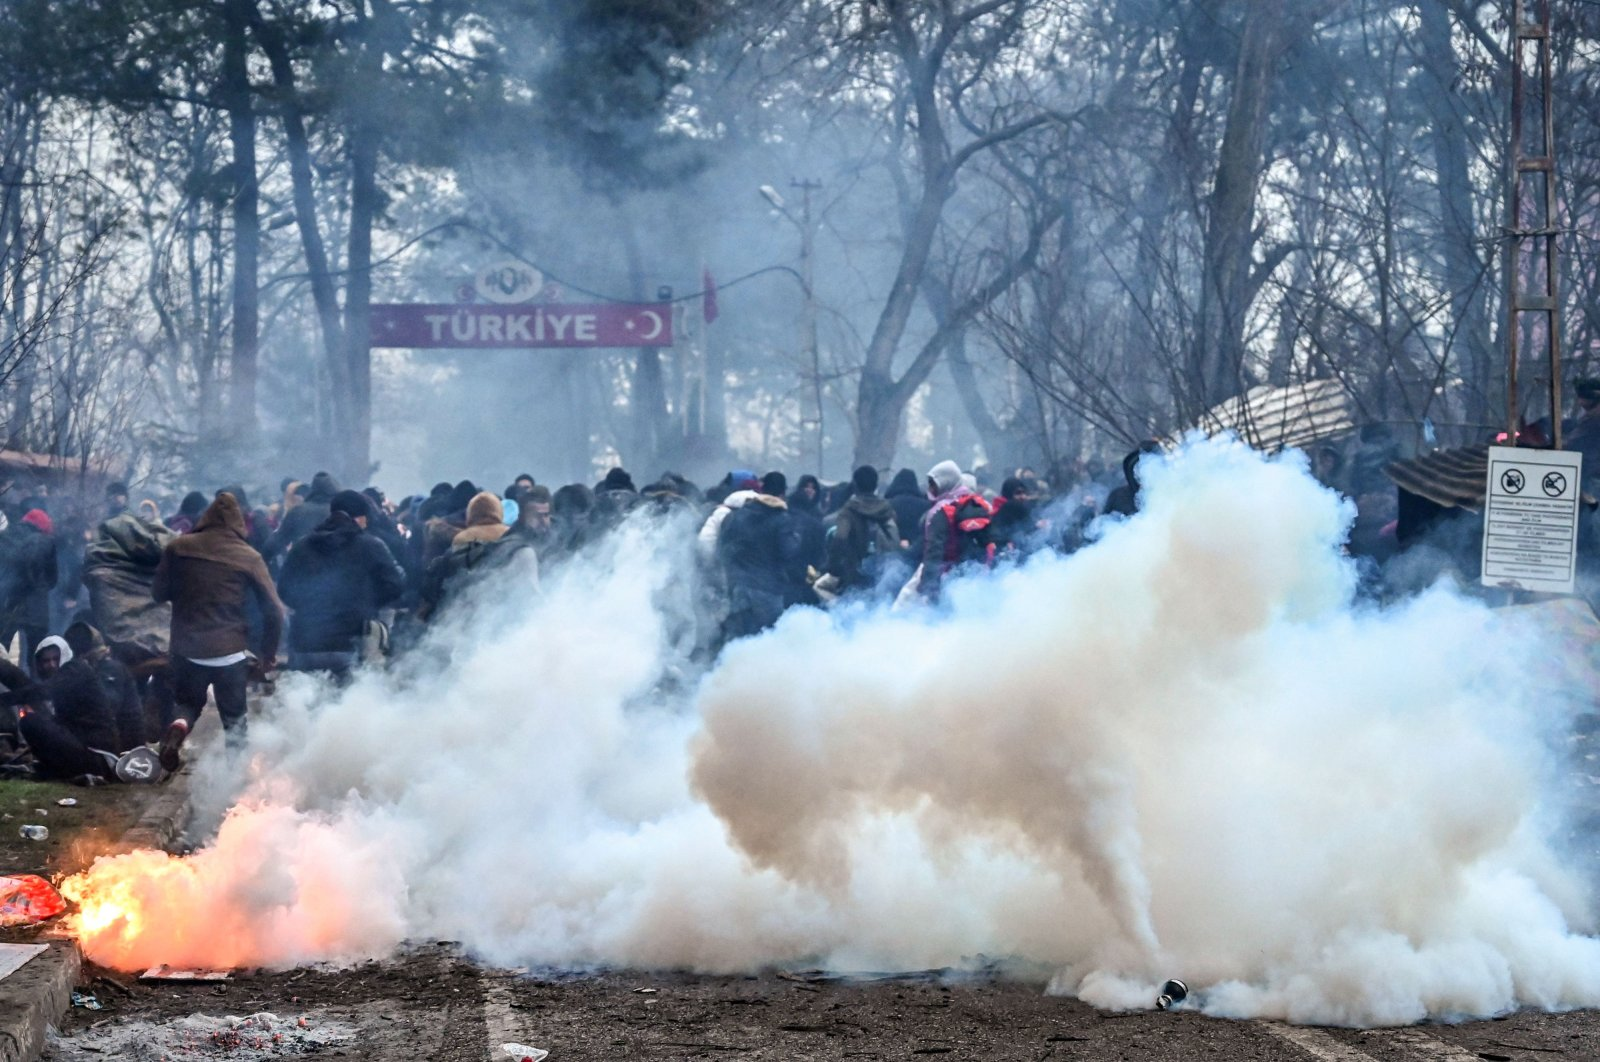 Migrants run away as Greek anti-riot police officers use tear gas in the buffer zone at the Turkey-Greece border, at Pazarkule, Turkey's Edirne province, Feb. 29, 2020. (AFP Photo)